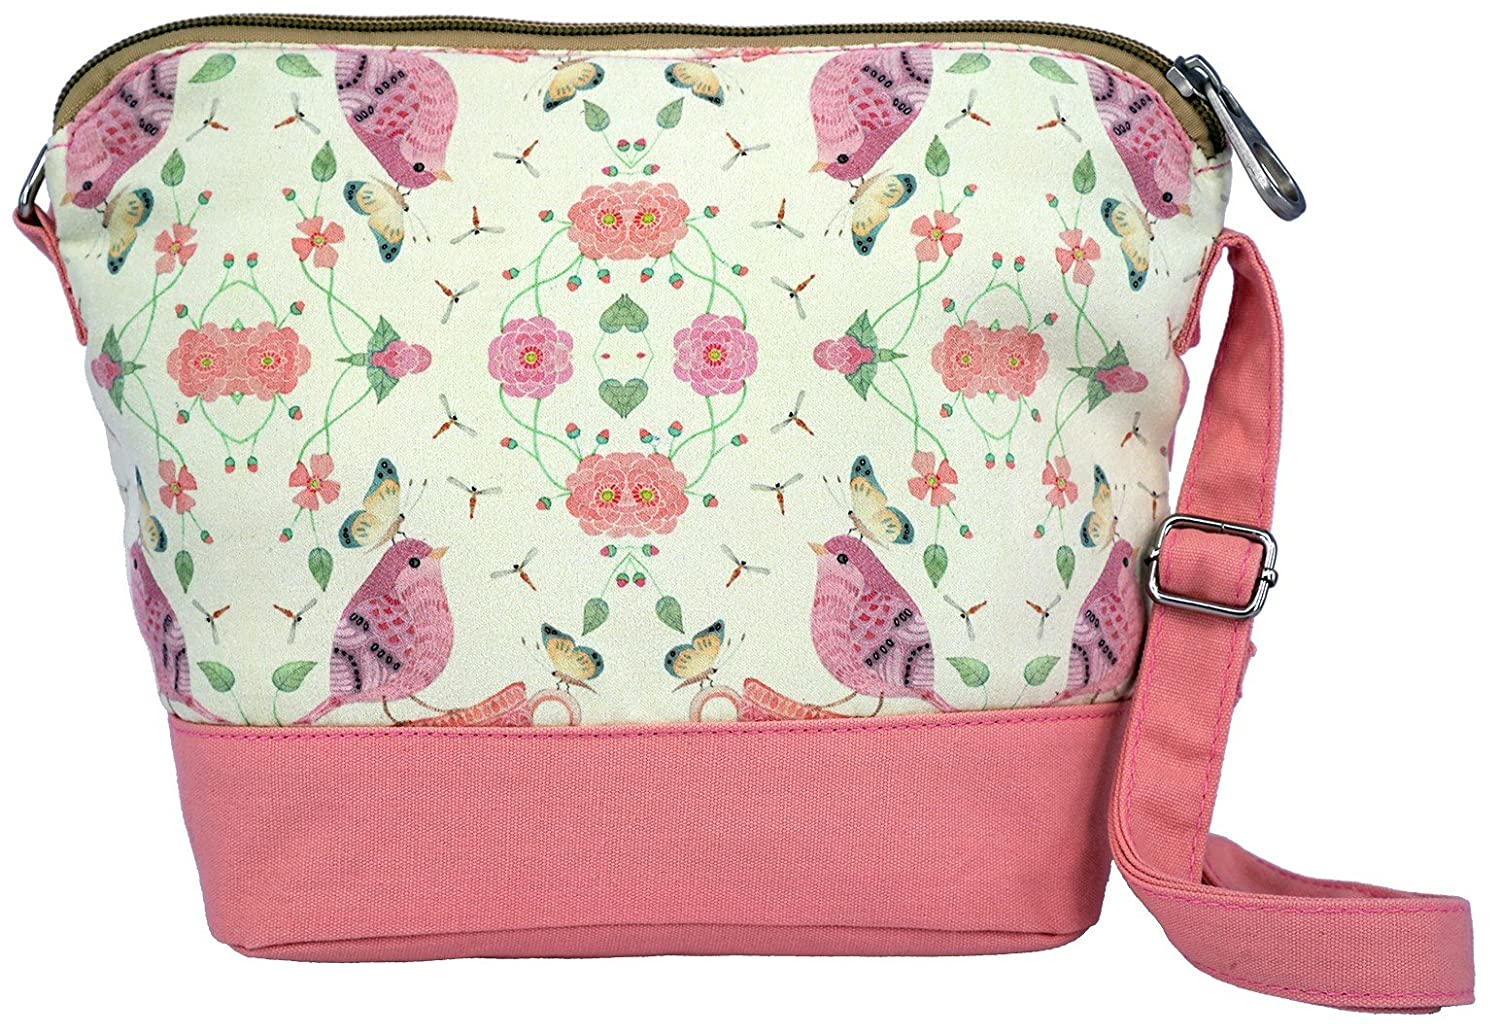 e3fff75d0 Crest Design Cute Canvas Crossbody Bag Shoulder Bag Purse For Girl and  Teenage (Pink): Amazon.in: Clothing & Accessories